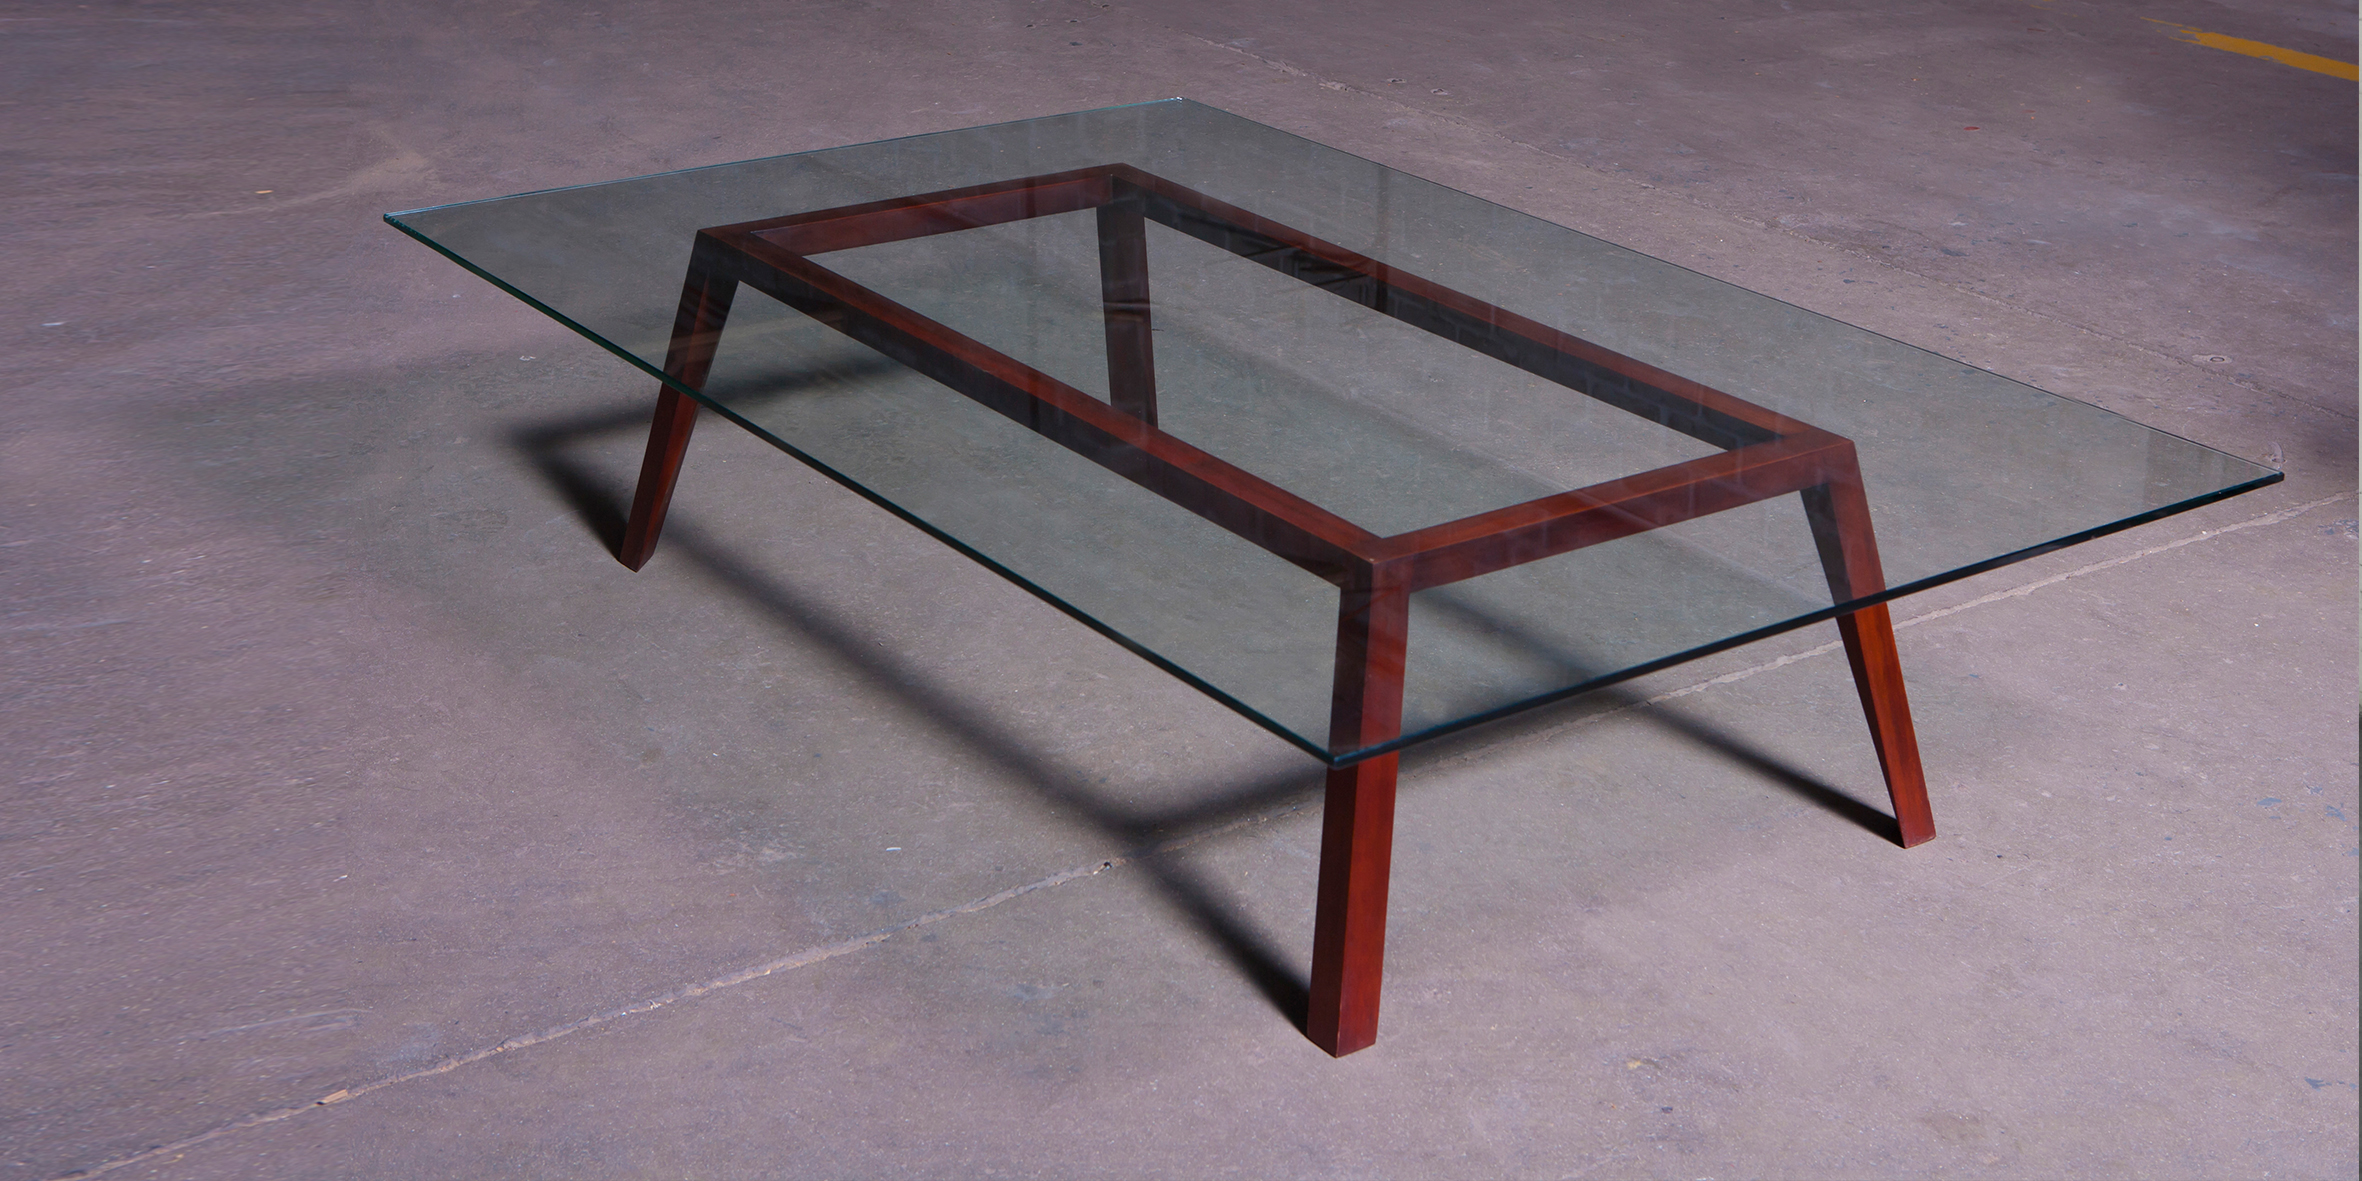 fbs - coffee table 1, mahogany, 1600 l x 1000 w x 400 h REV 1